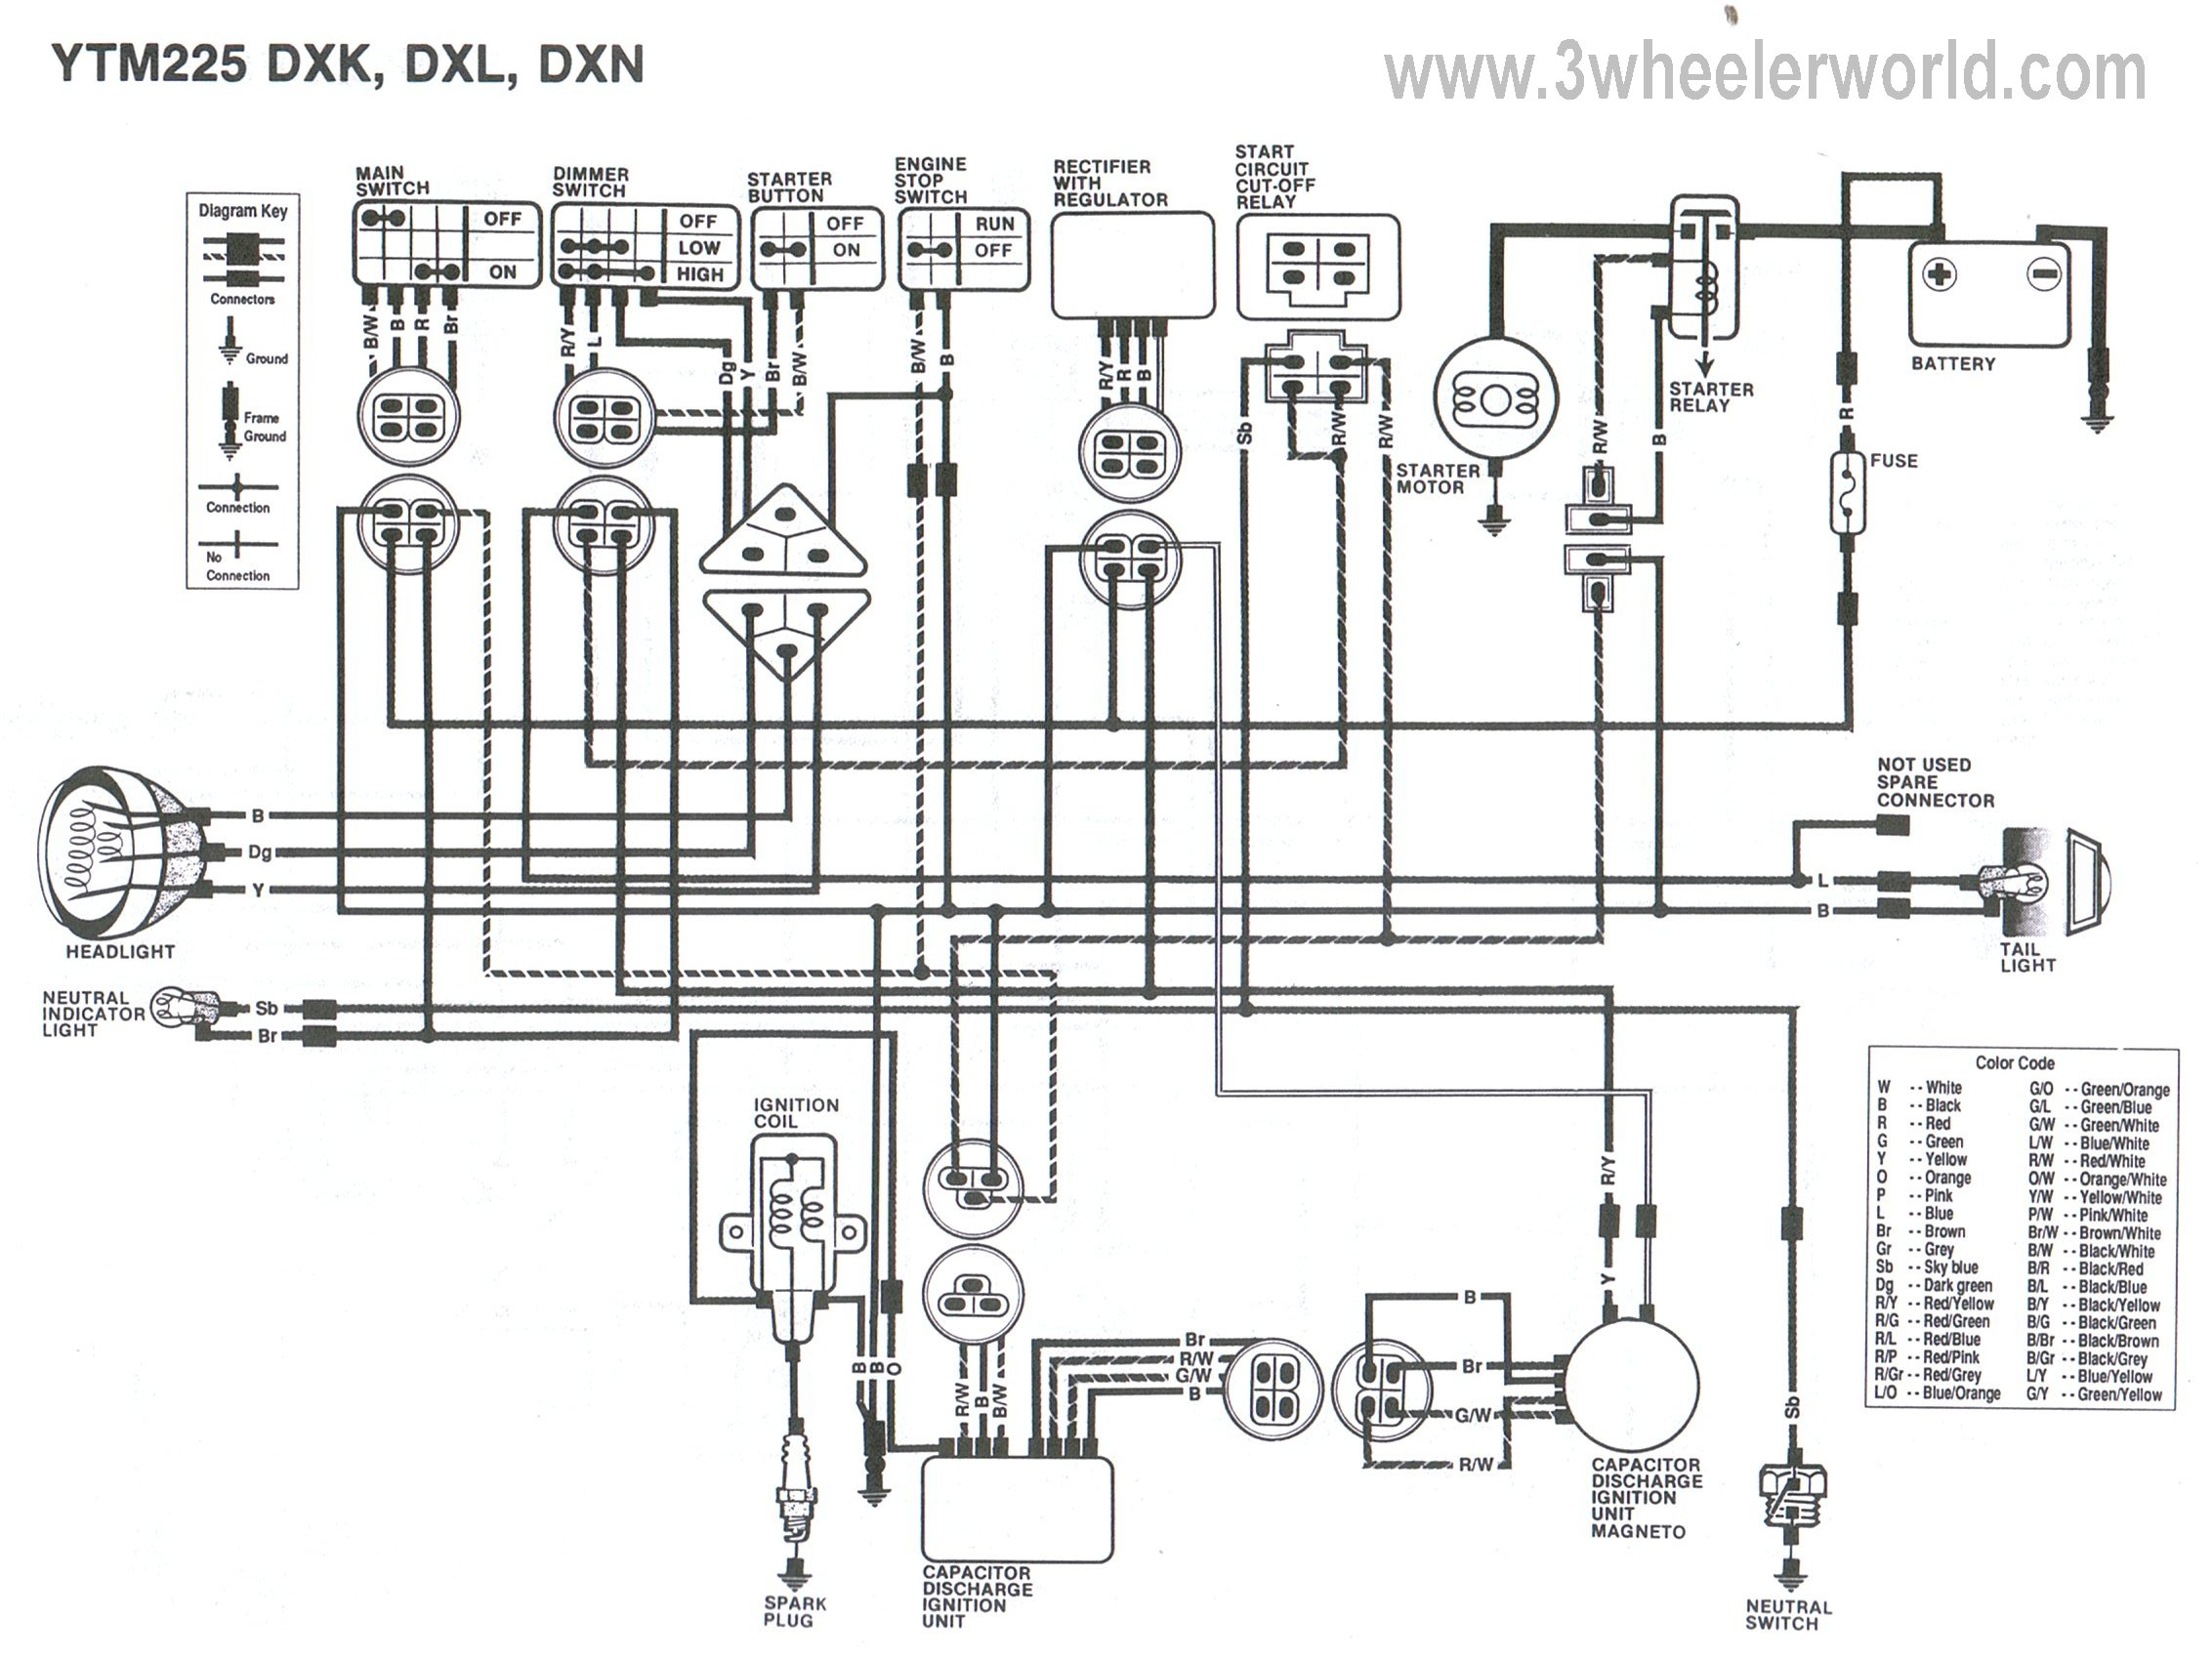 YTM225DXKDXLDXN Yamaha Moto Wiring Diagram on 98 yamaha warrior, mighty mule, chevy engine starter, cid distributor, chevy engine,